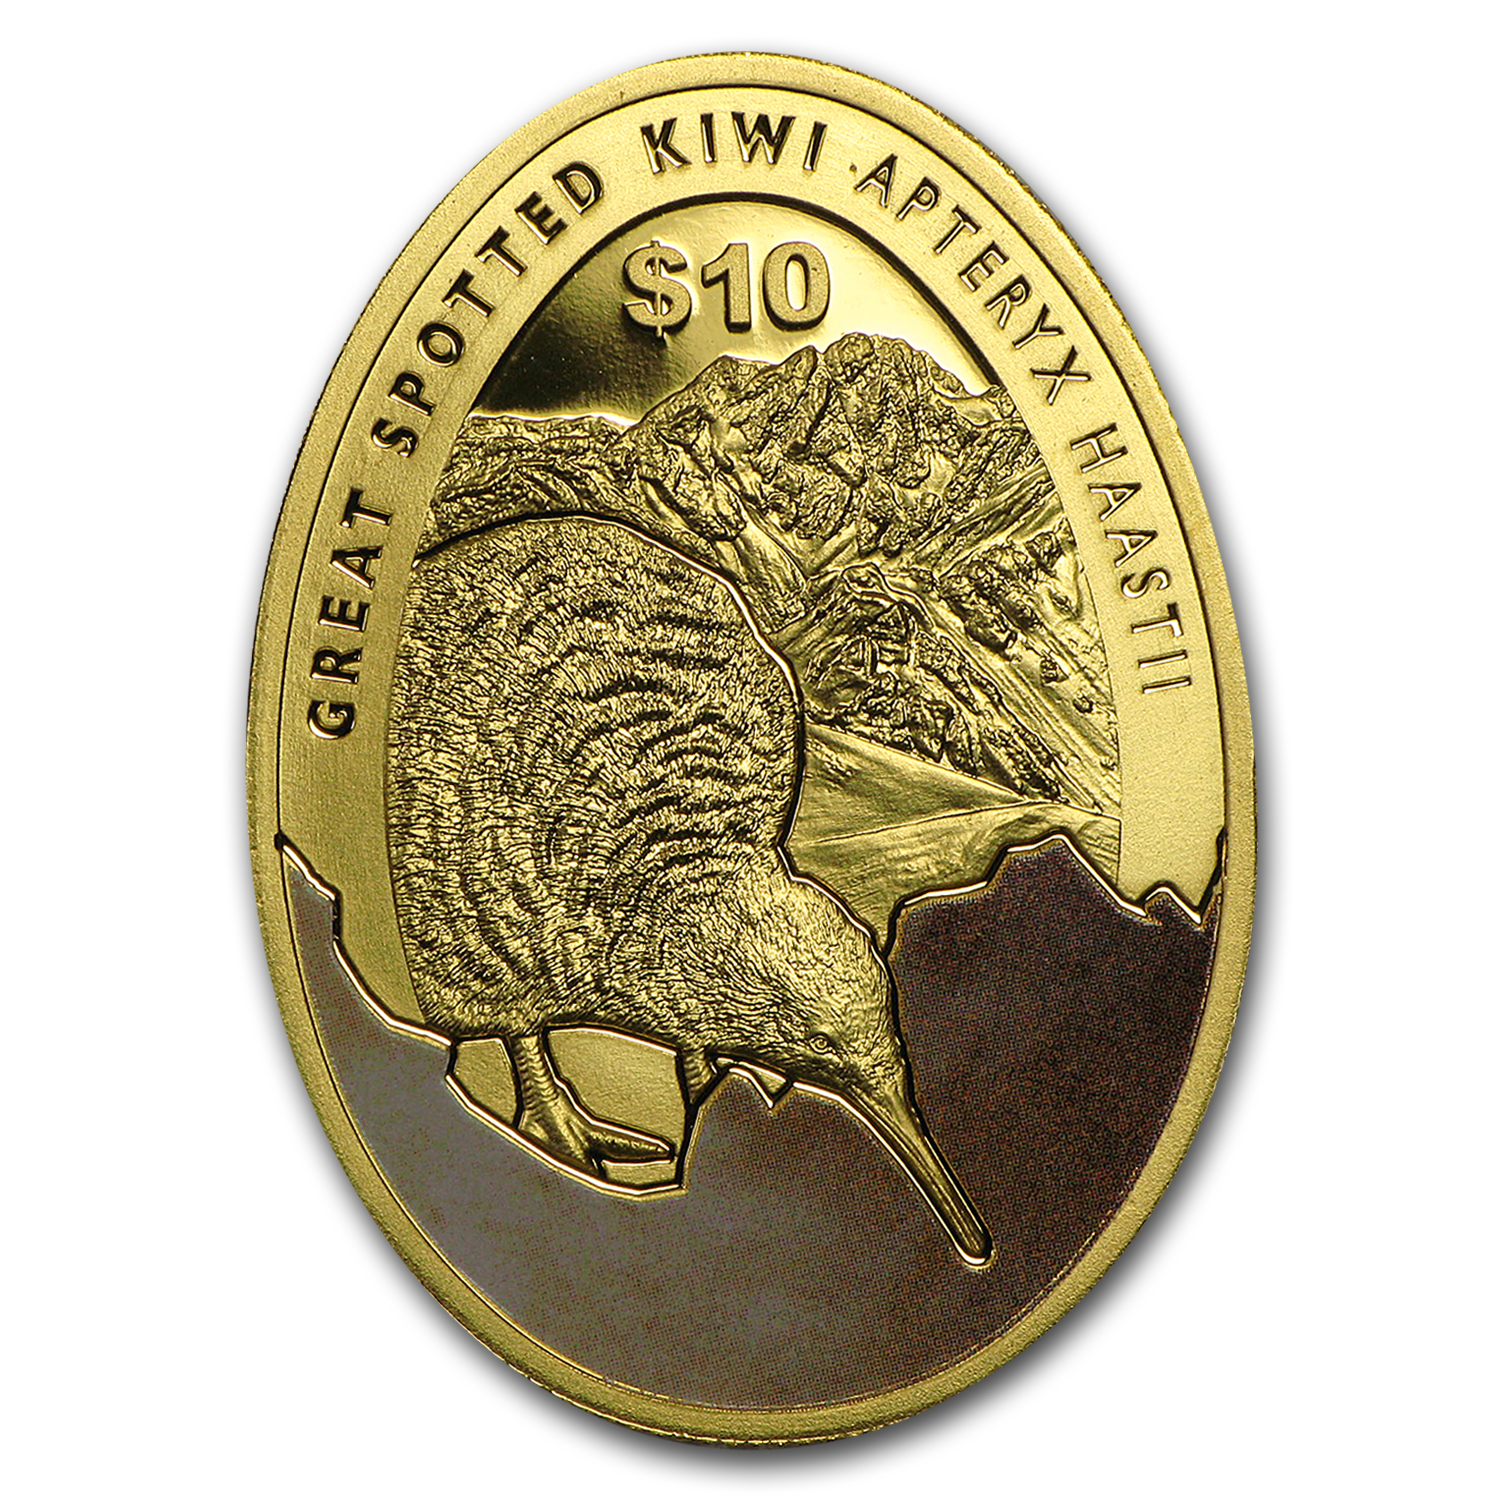 2016 New Zealand 1/4 oz Proof Gold $10 Kiwi Egg-Shaped Proof Coin